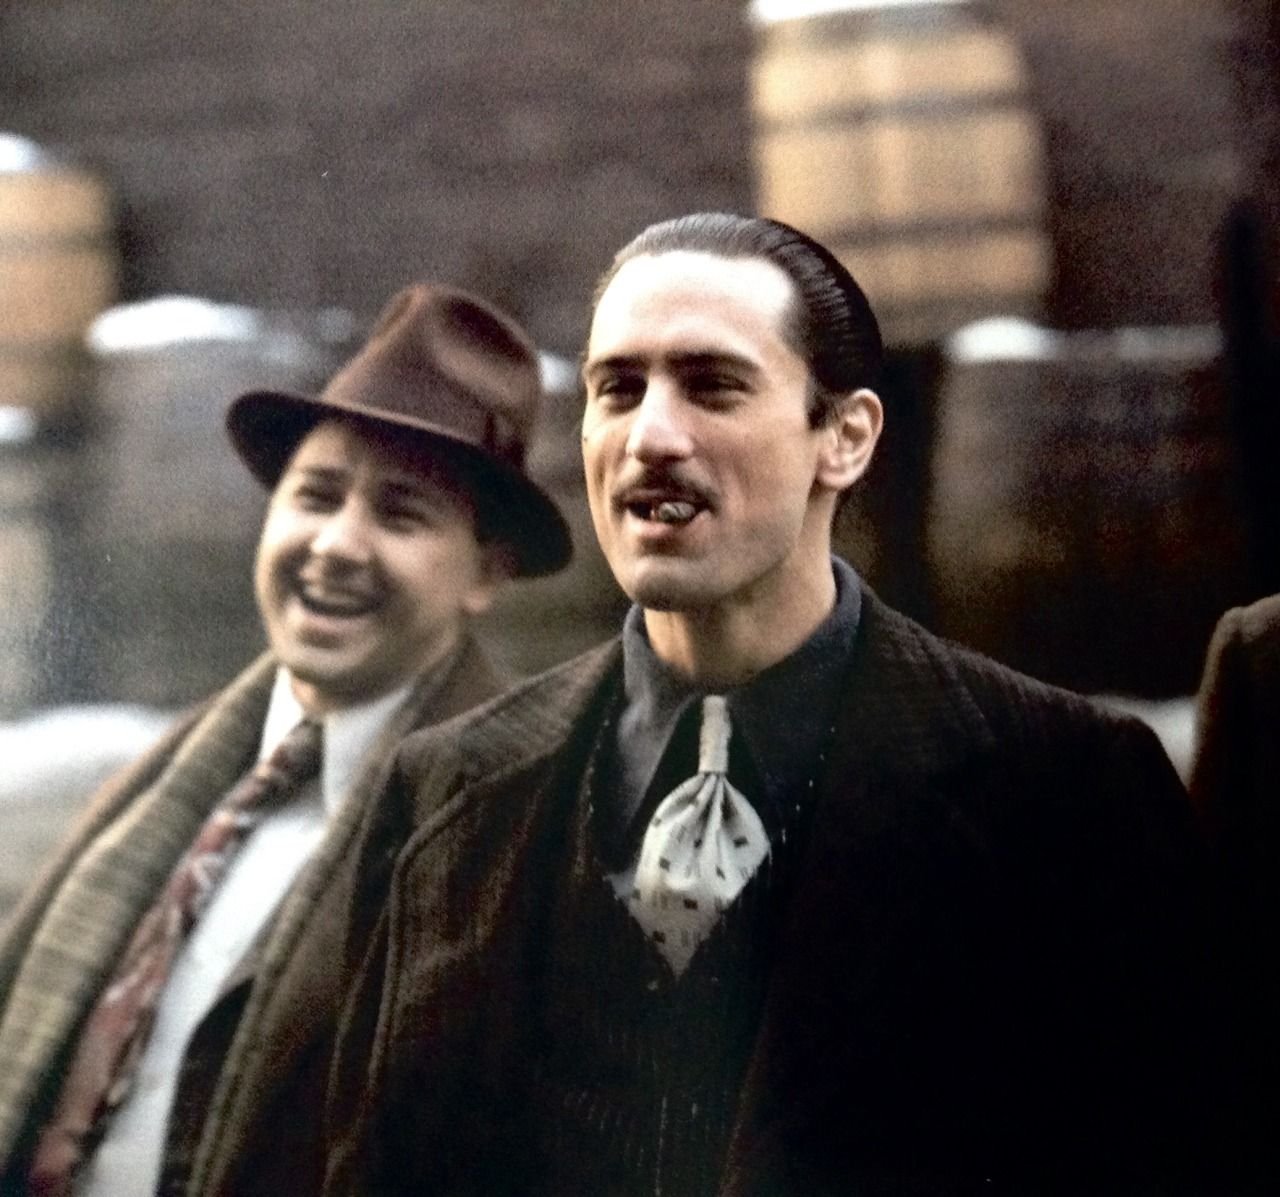 Robert De Niro As Young Vito Corleone And Bruno Kirby As Young